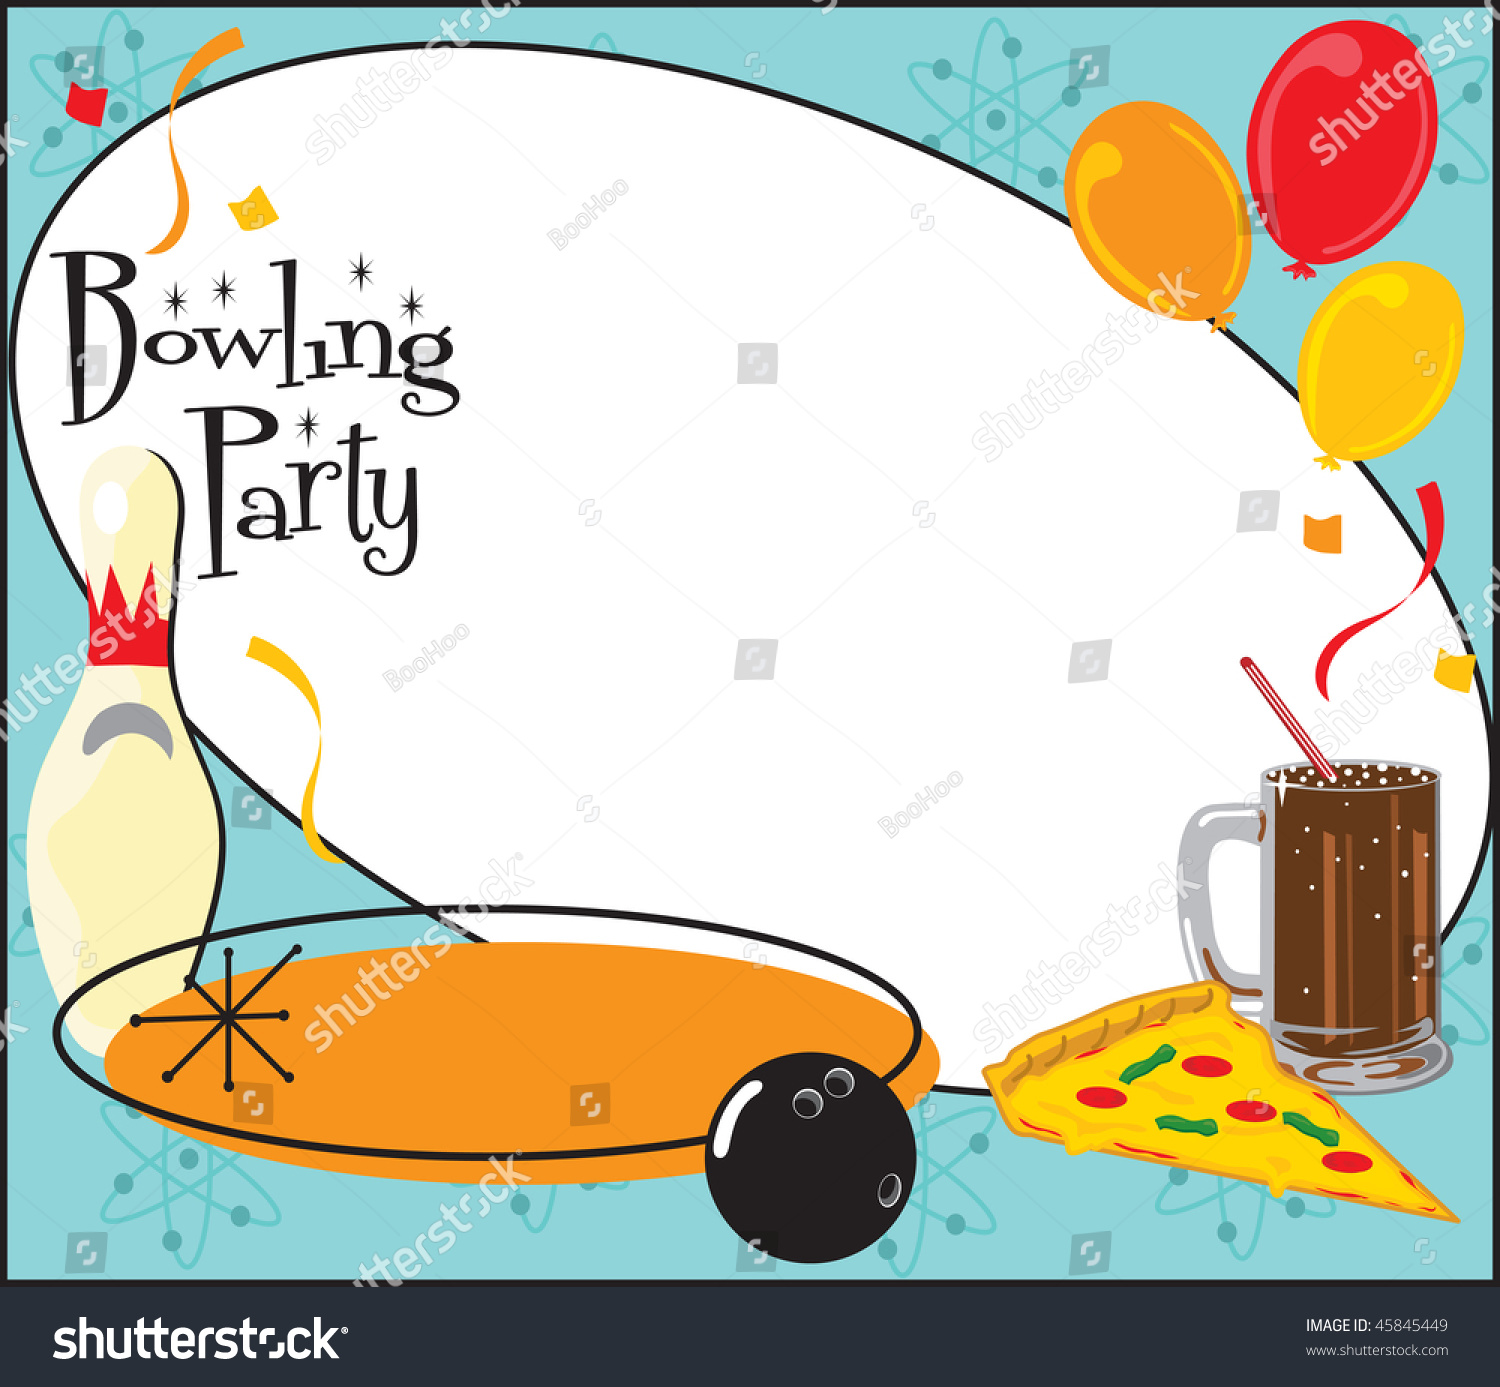 Royalty free kids or adult bowling birthday party or 45845449 kids or adult bowling birthday party or team party invitation filmwisefo